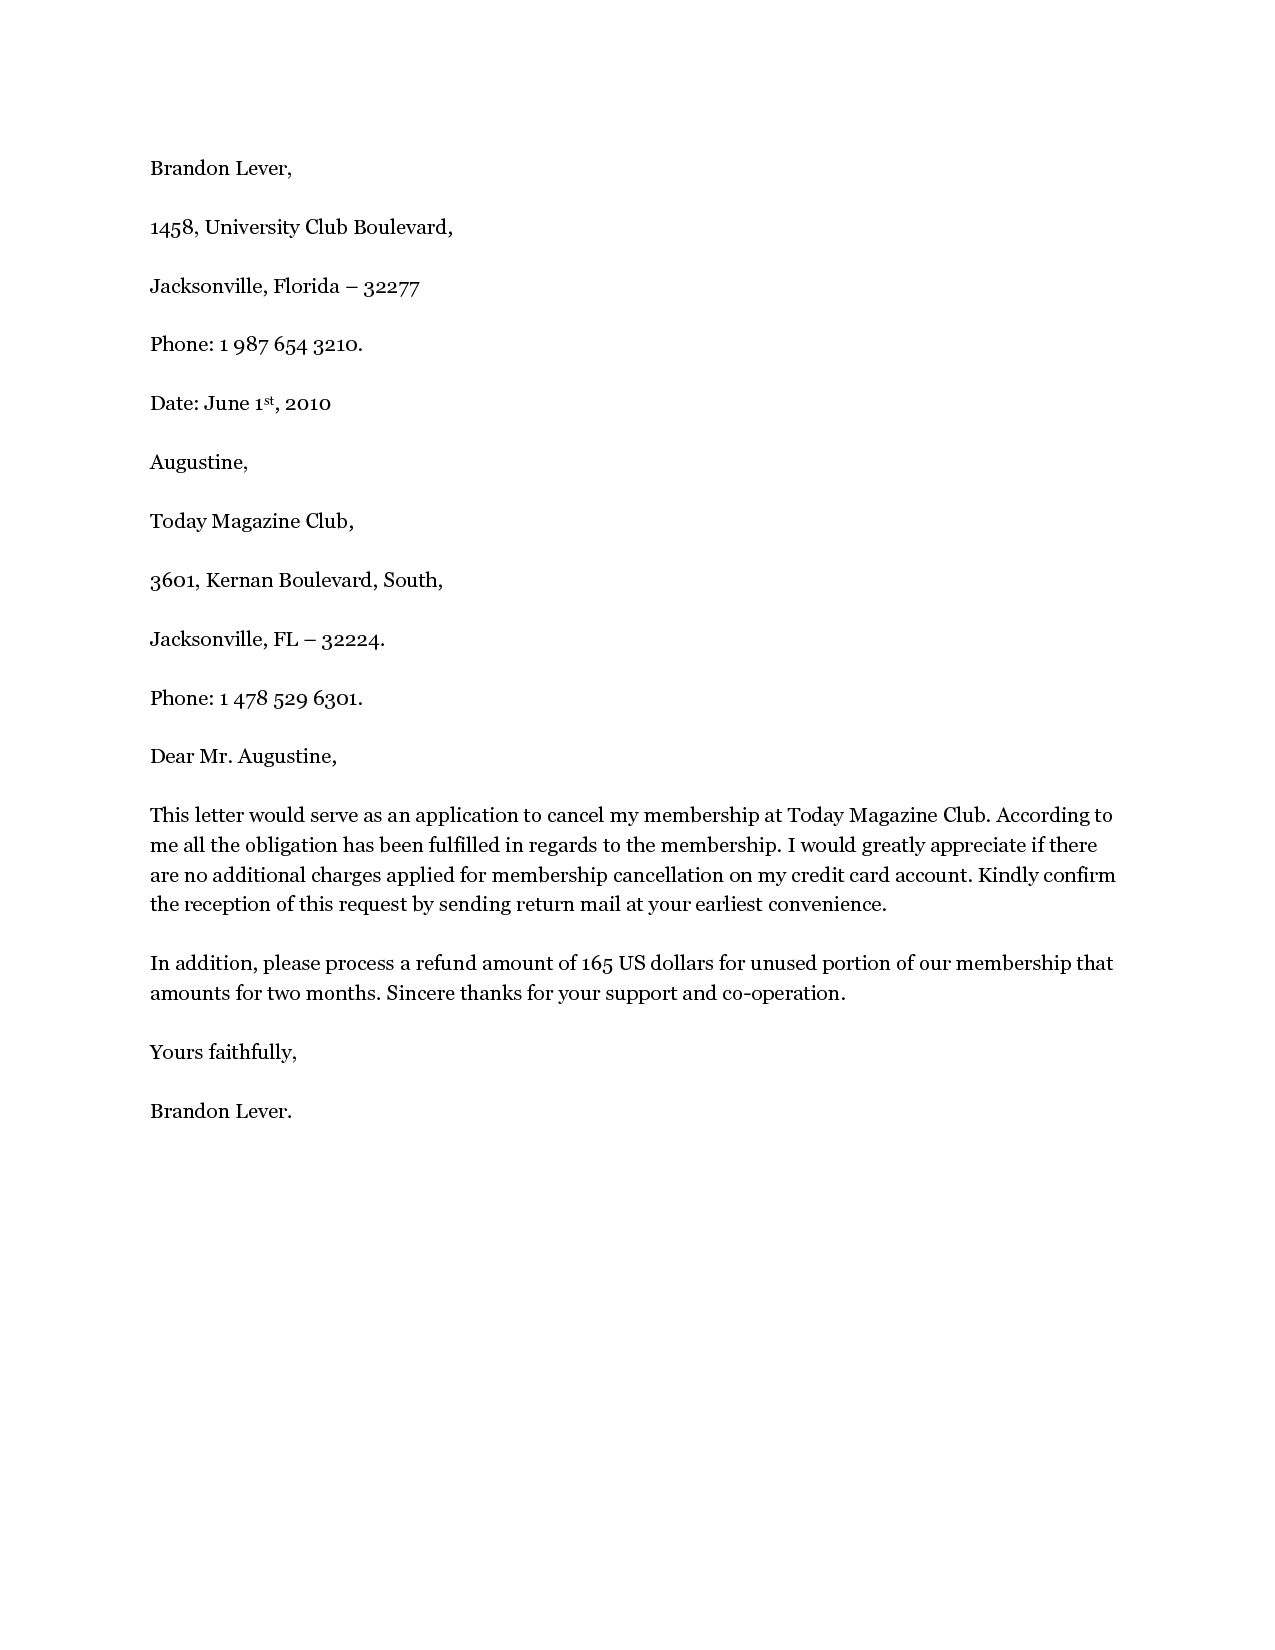 Cancellation Notice Letter Contract Service Sample Services